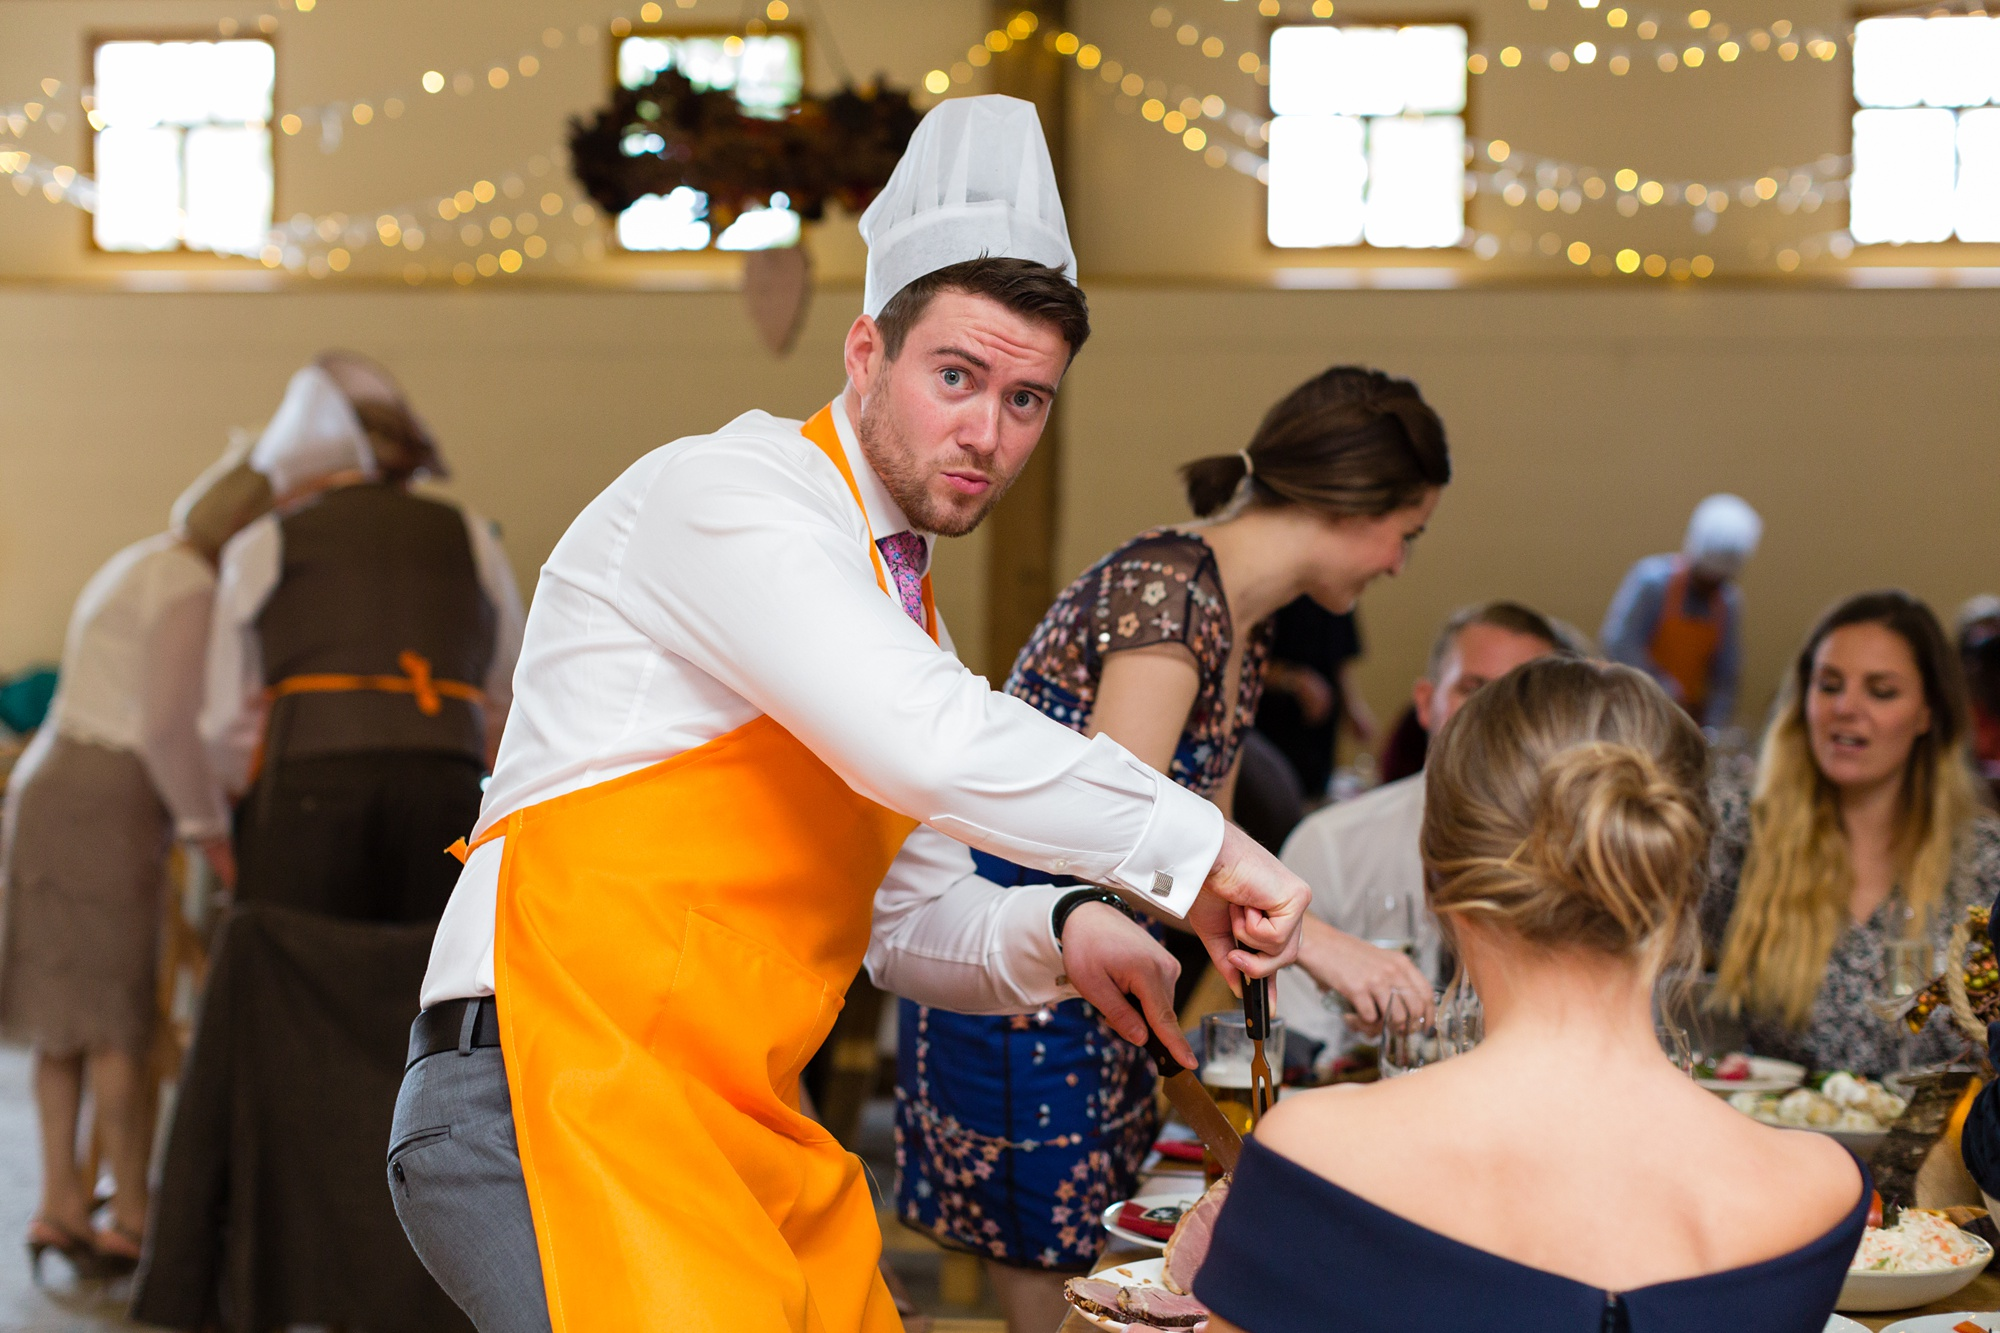 Yorkshire Wedding Photographers at Barmbyfield Barn guest makes funny face whilst carving meat